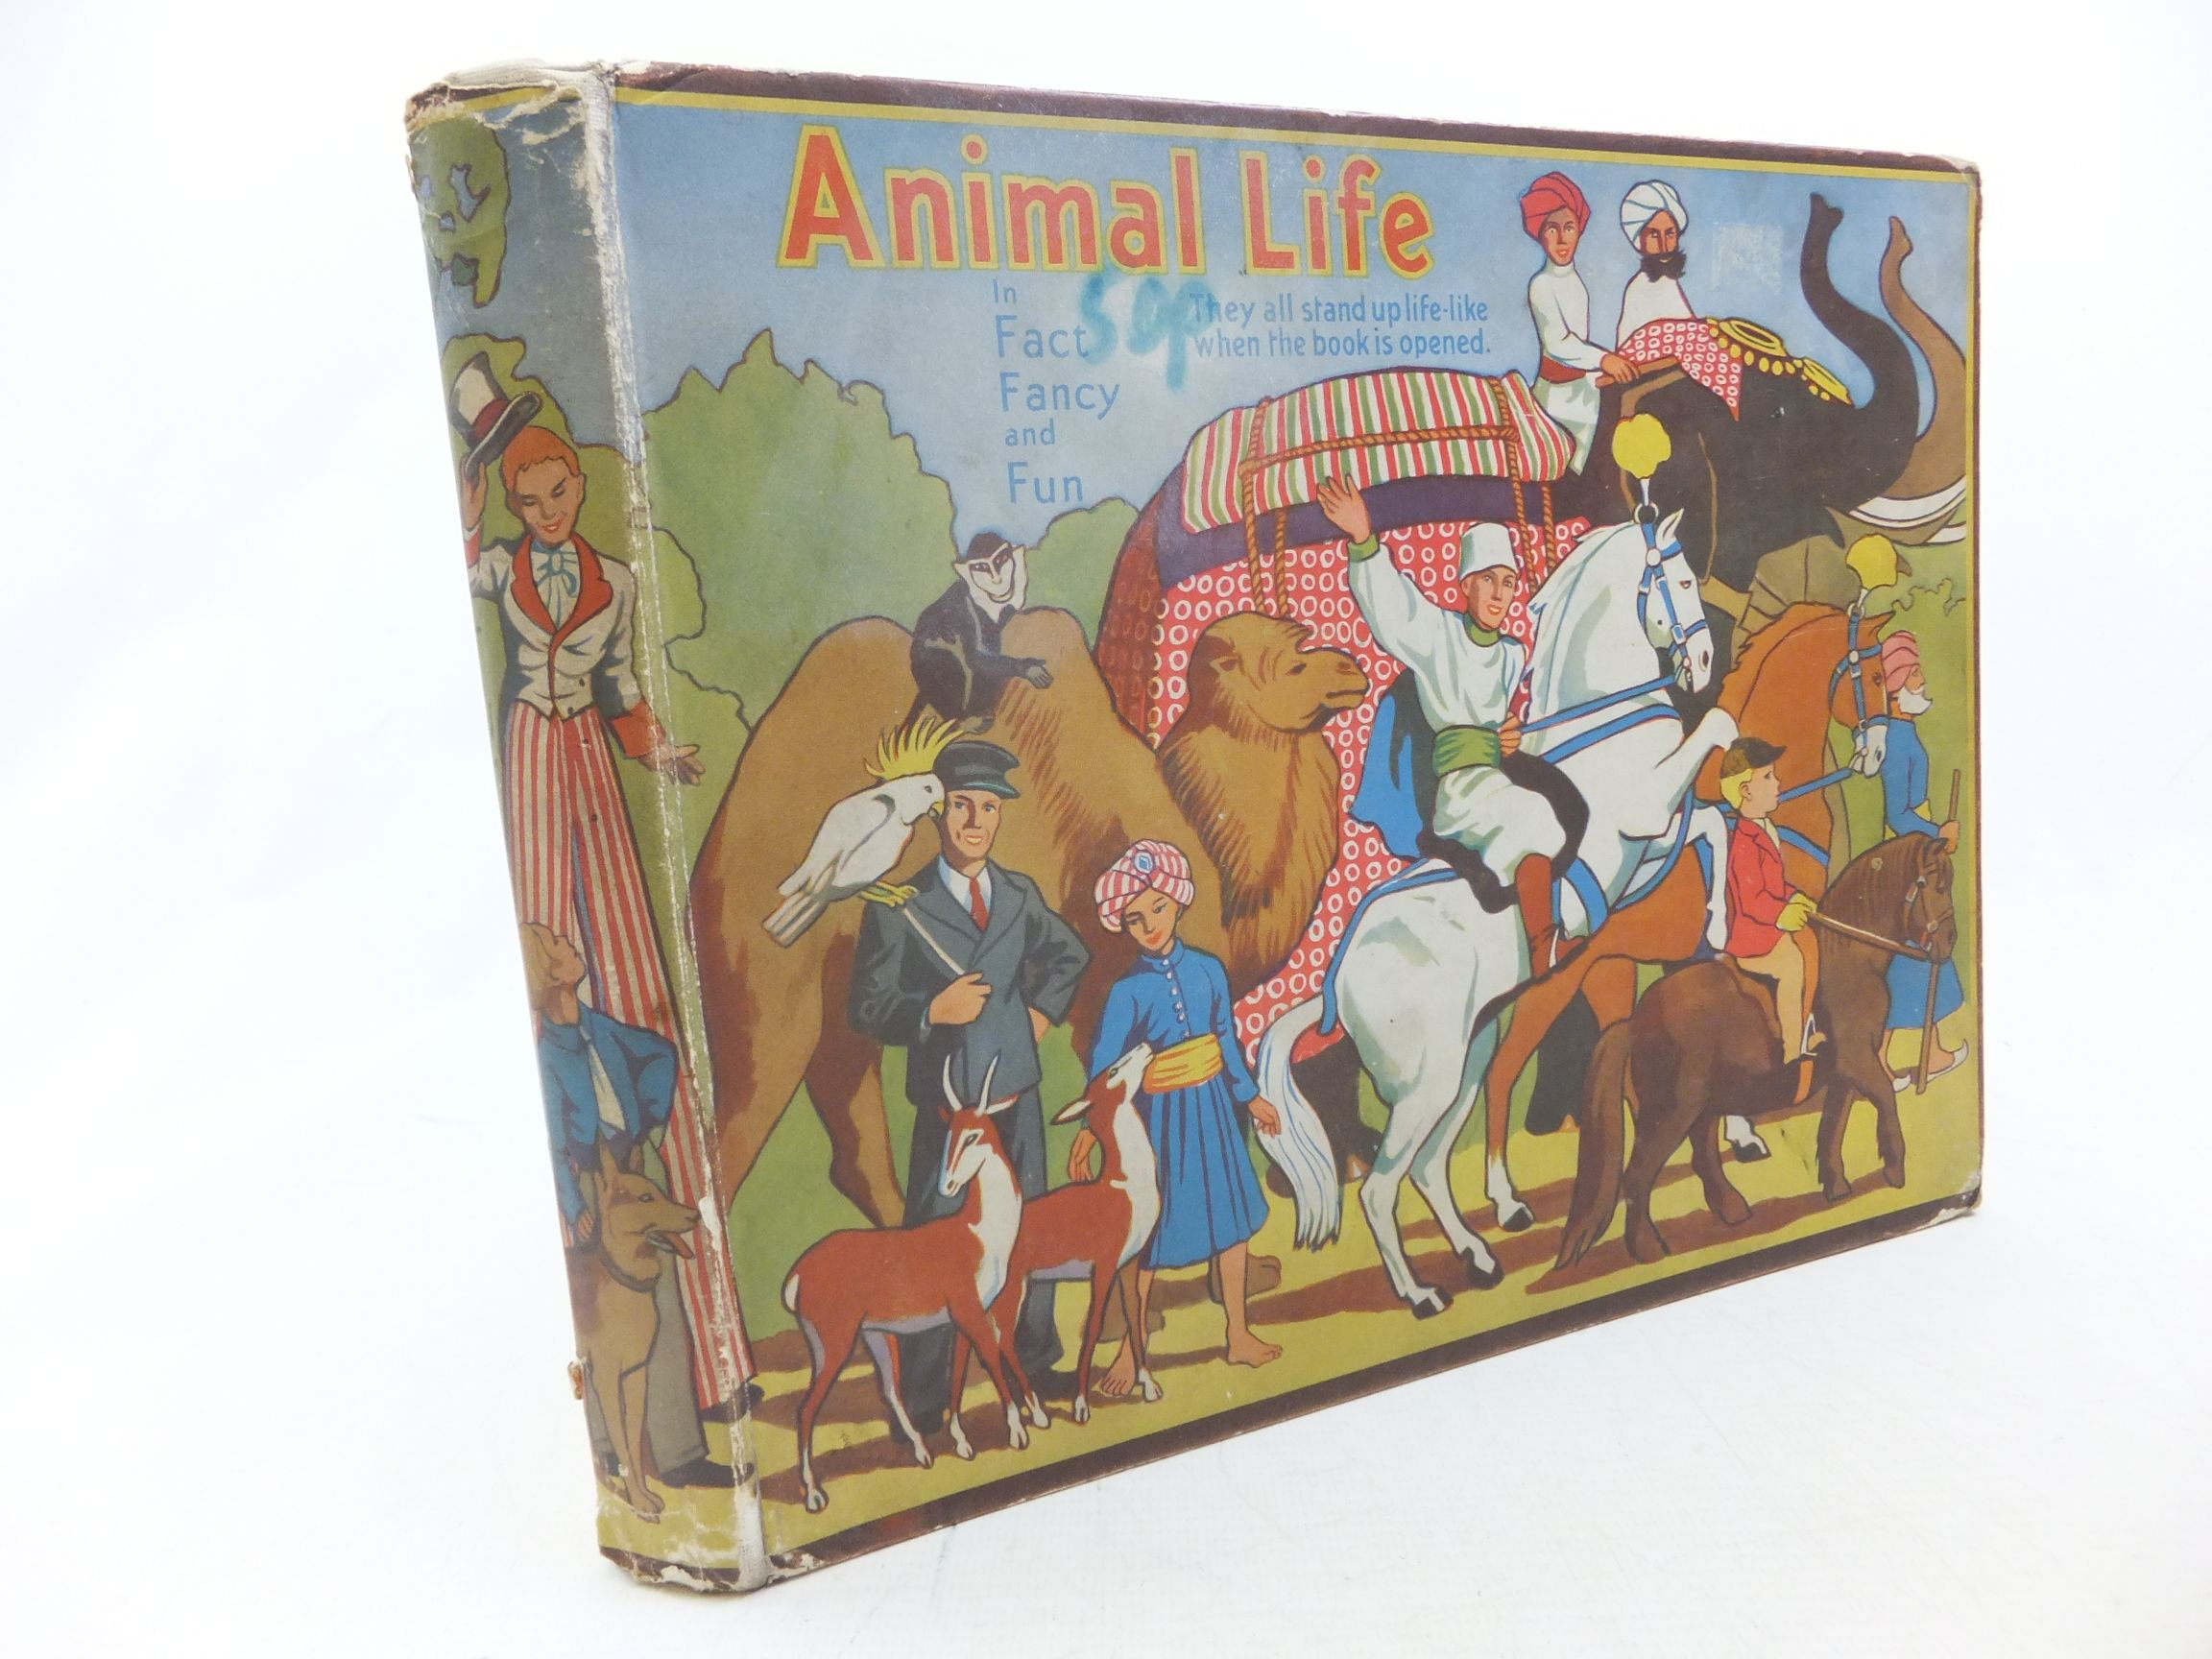 Photo of ANIMAL LIFE IN FACT, FANCY AND FUN written by Giraud, S. Louis published by Daily Sketch & Sunday Graphic Ltd. (STOCK CODE: 2114240)  for sale by Stella & Rose's Books